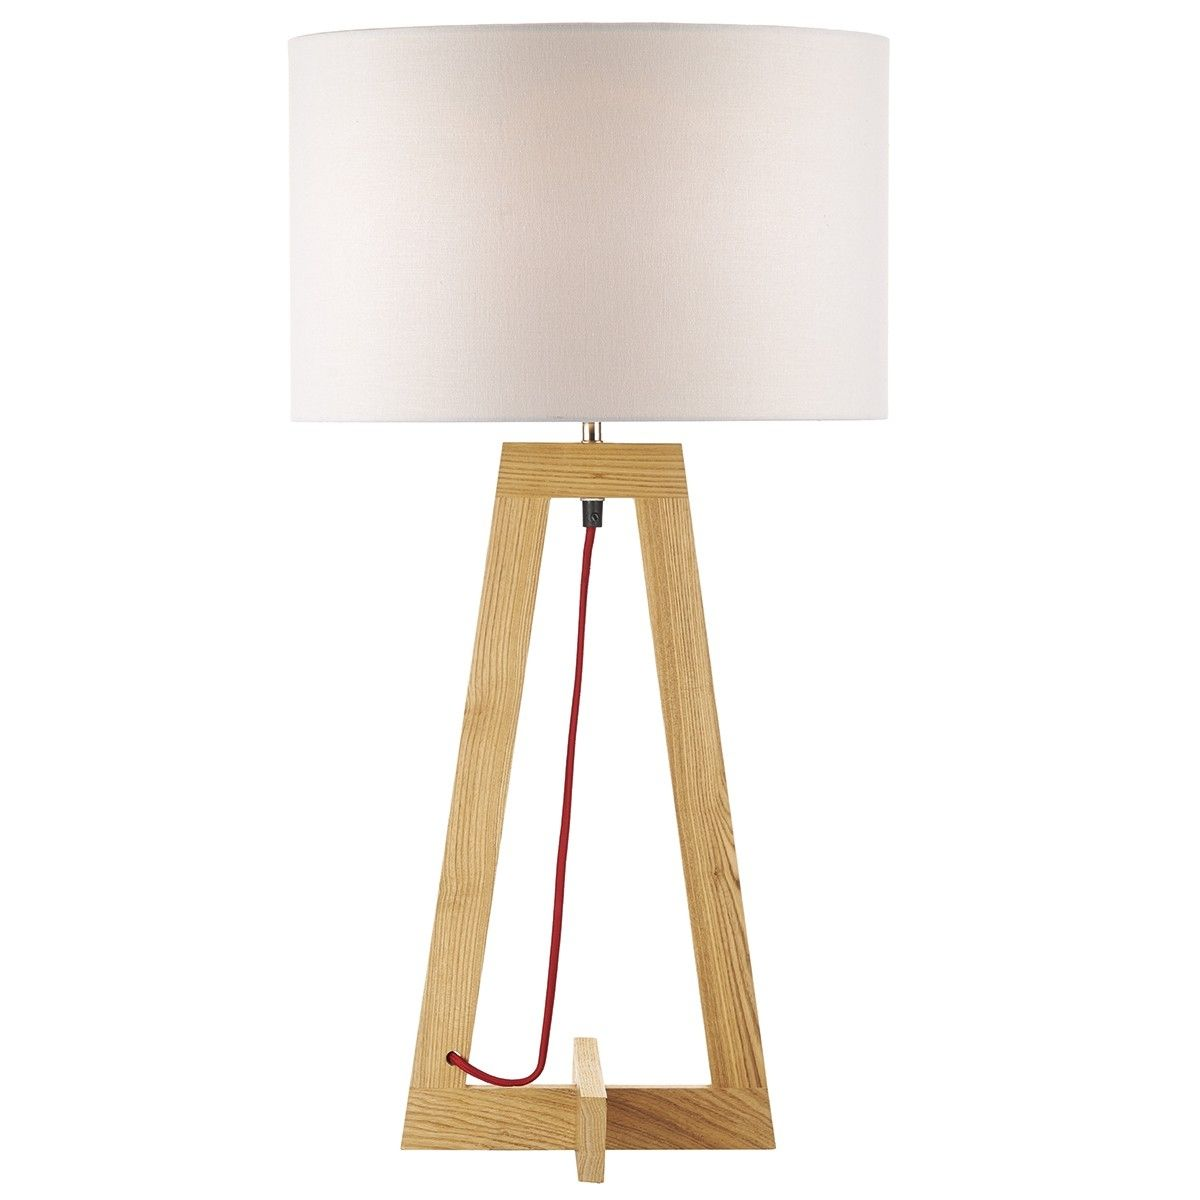 Wooden Table Lamp Bases Only